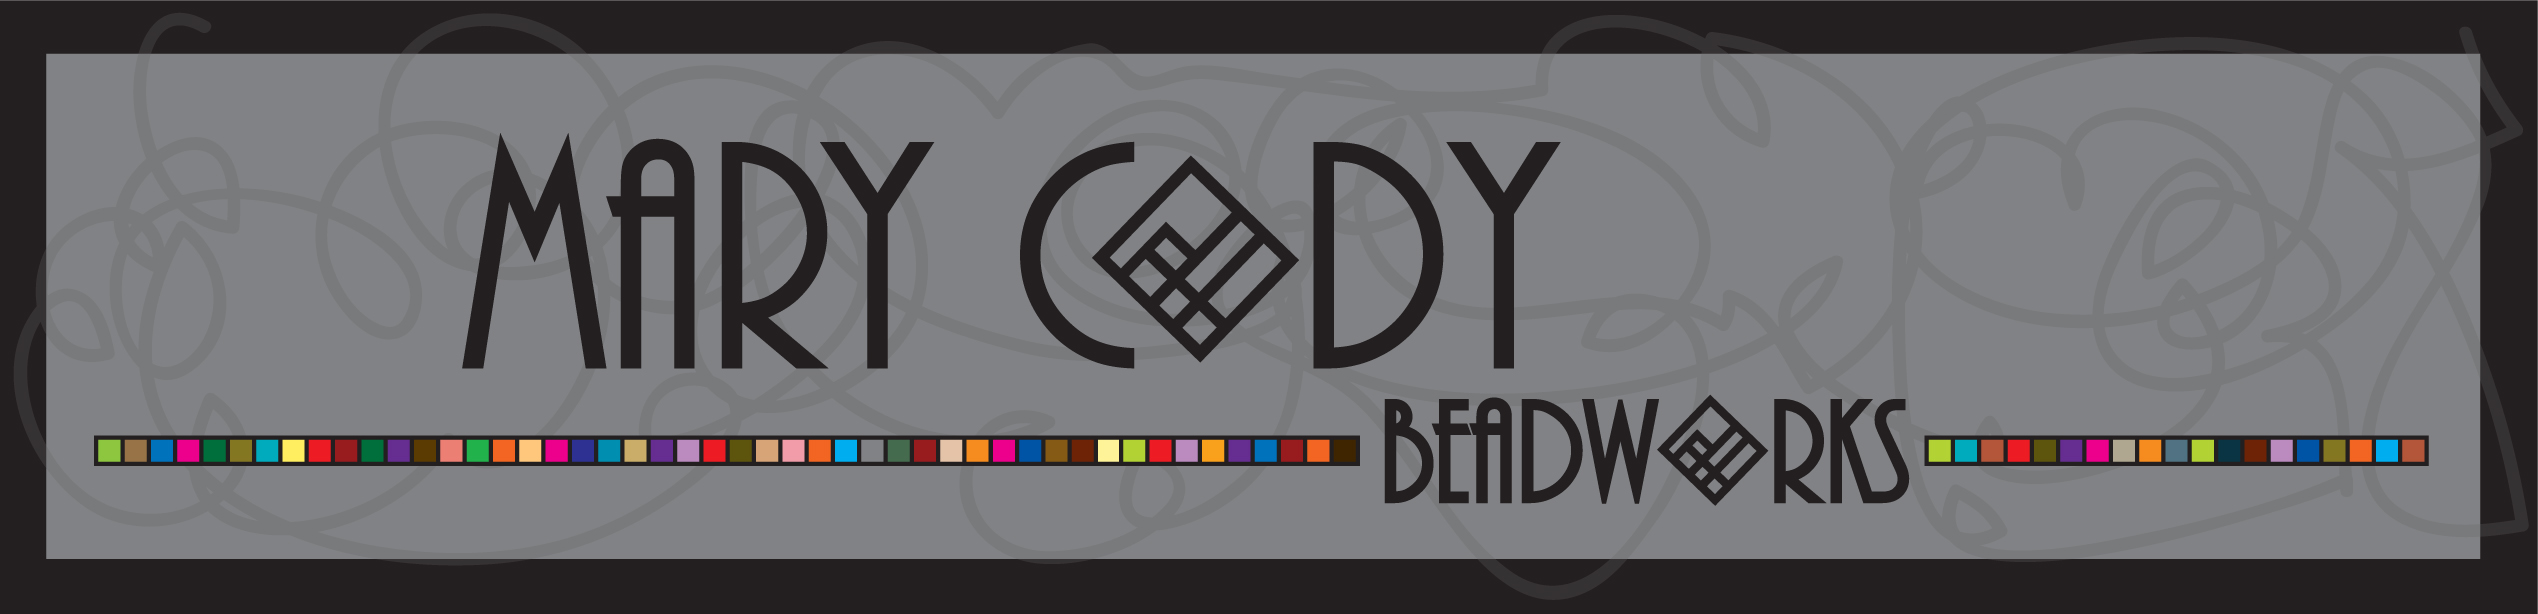 Mary Cody Beadworks